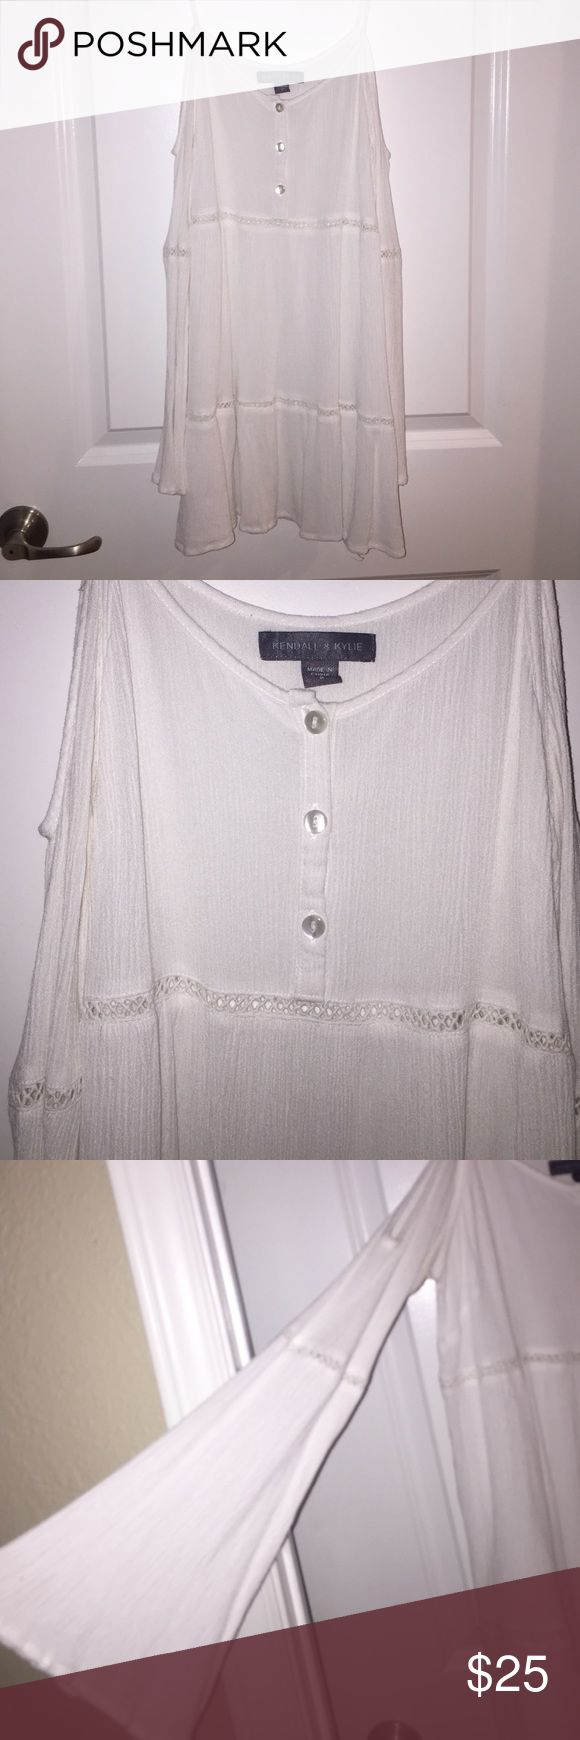 Kendall and Kylie white coverup/ dress cold shoulder white dress from pacsuns Kendall's & Kylie collection. size S. would work for xs and S Kendall & Kylie Dresses